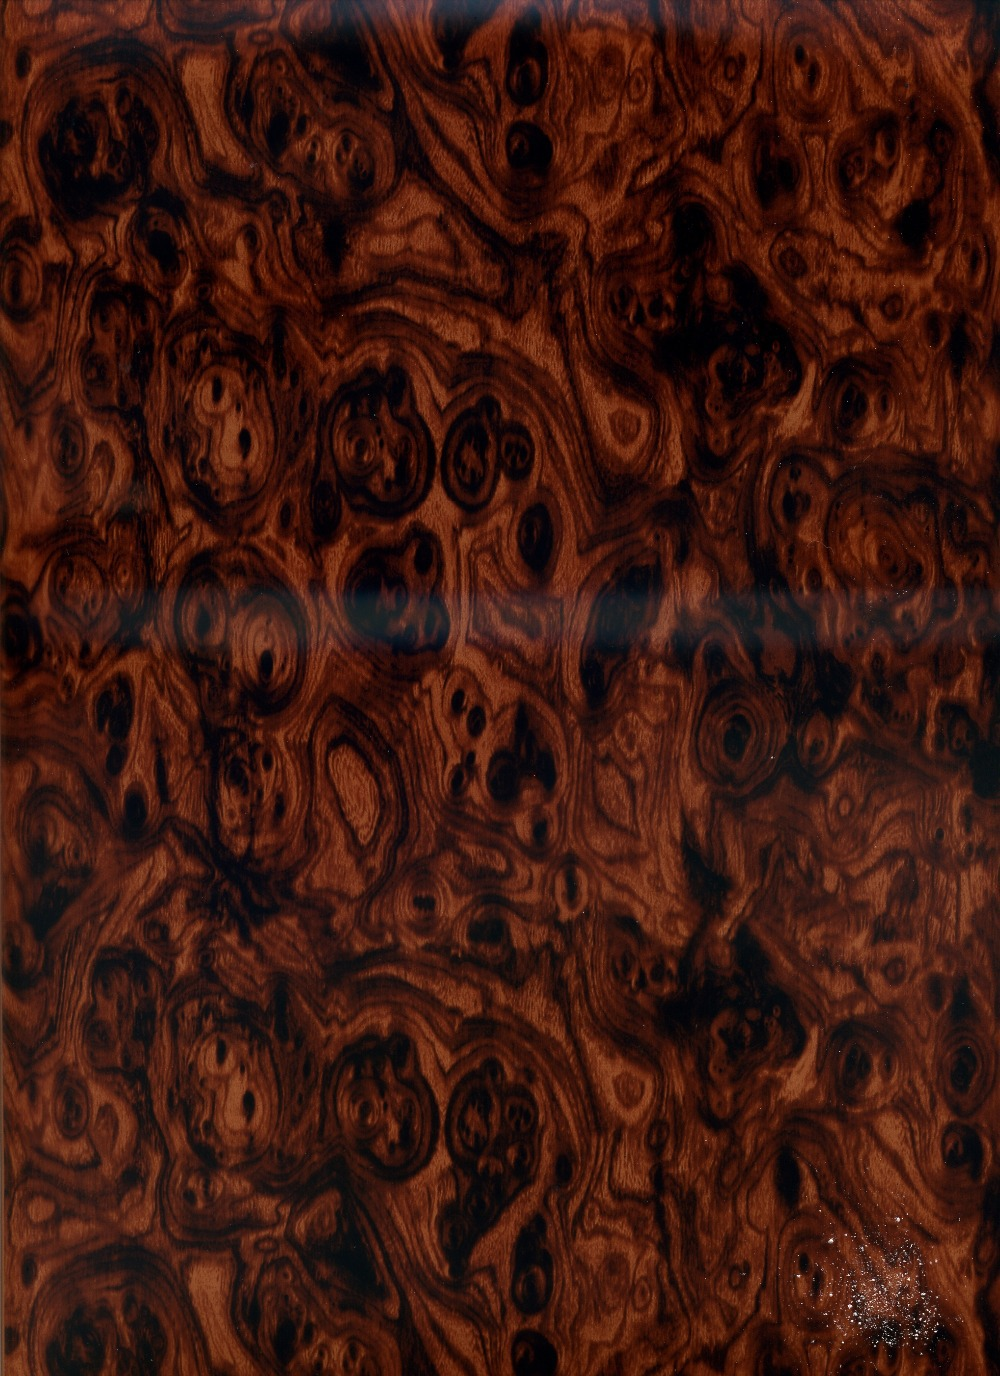 Wurzelholz Textur Us 56 Special Coffee Walnut Burl Wood Grain Water Tranfer Printing M 1705 Aqua Print For Furniture Lamp Bases Hydrographic Film On Aliexpress